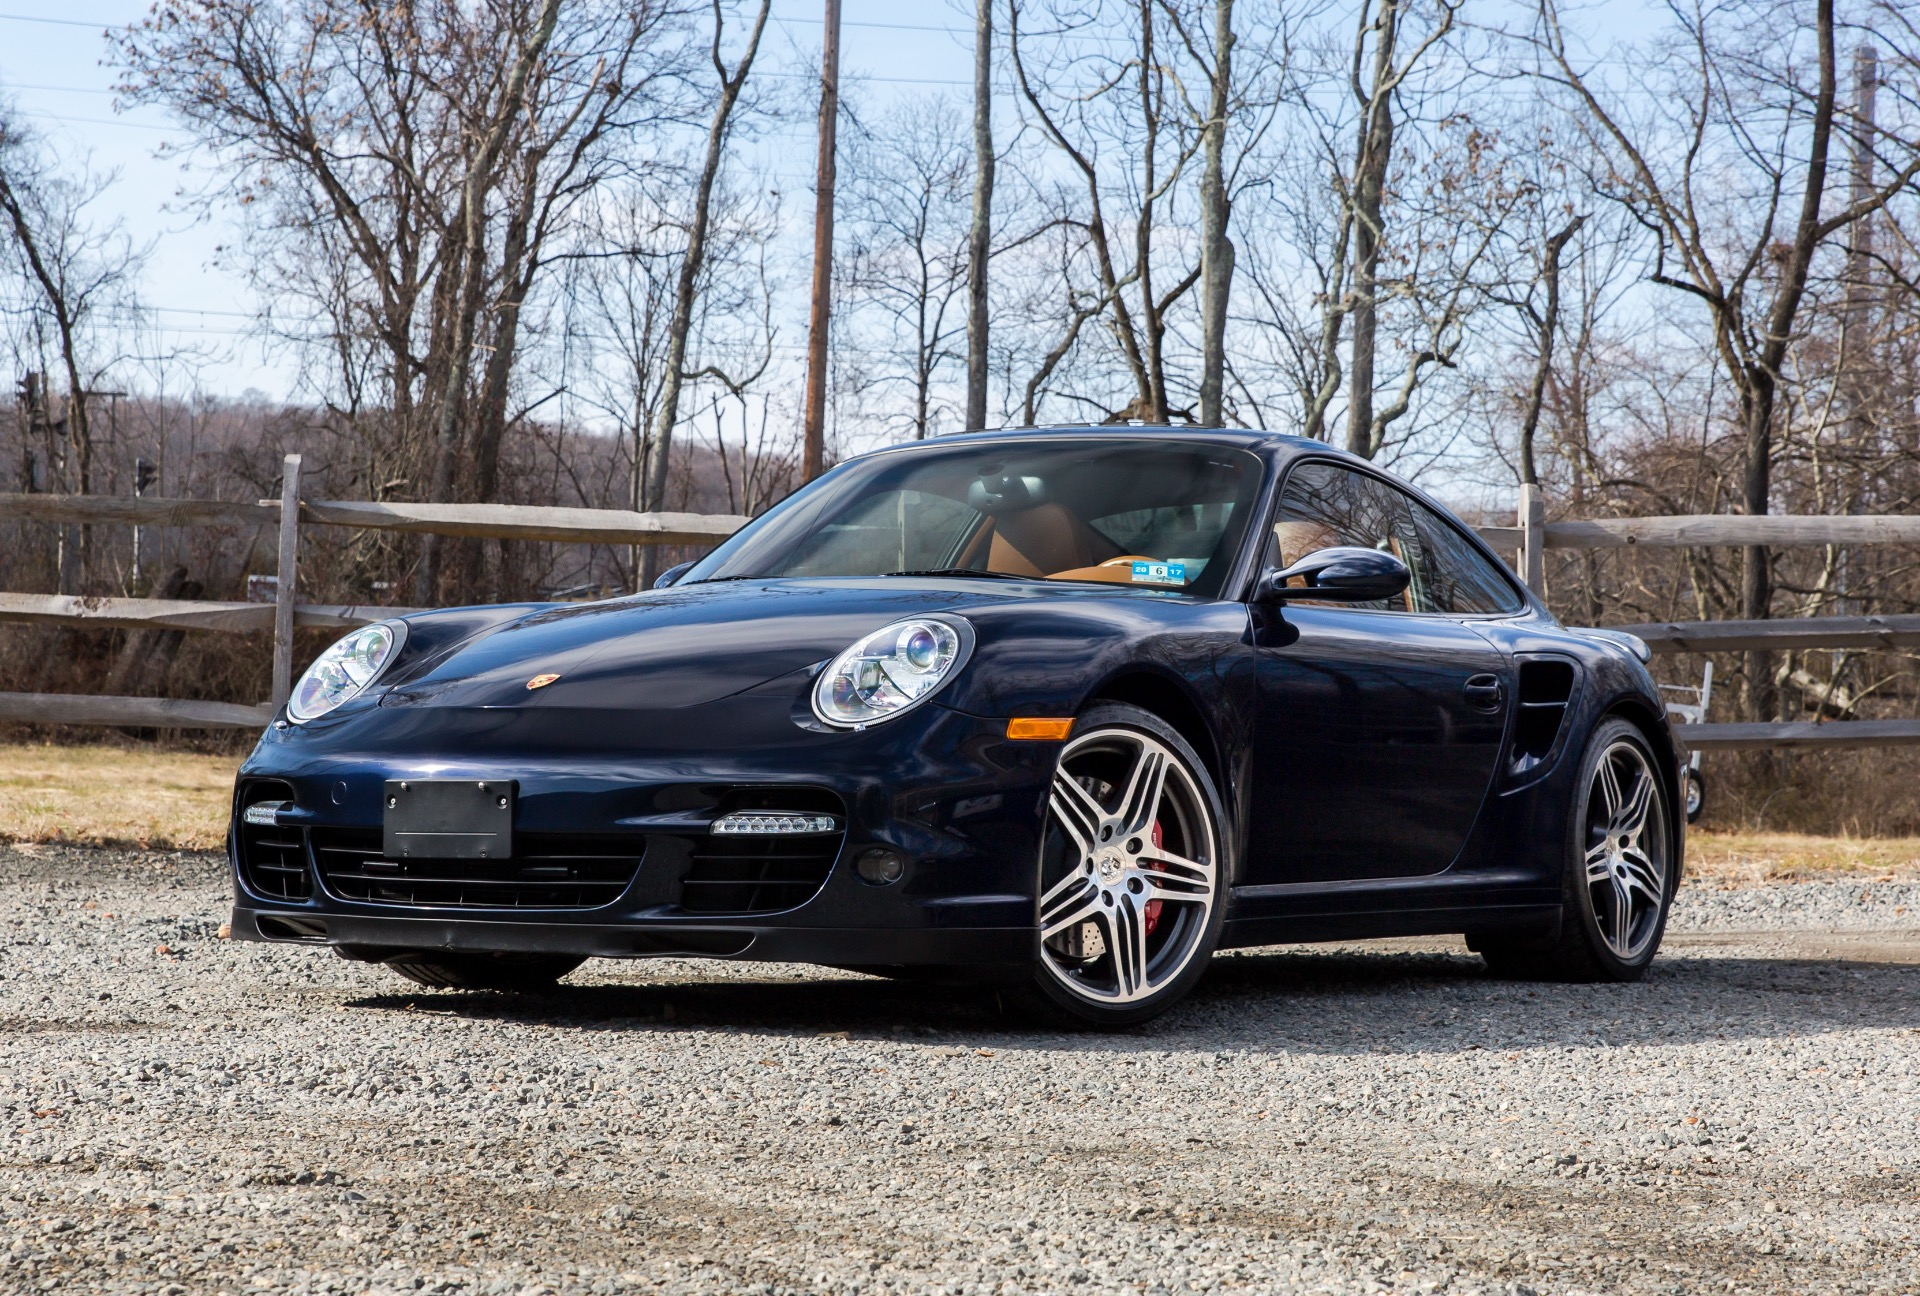 2007 porsche 911 turbo turbo 21 994 miles blue coupe. Black Bedroom Furniture Sets. Home Design Ideas